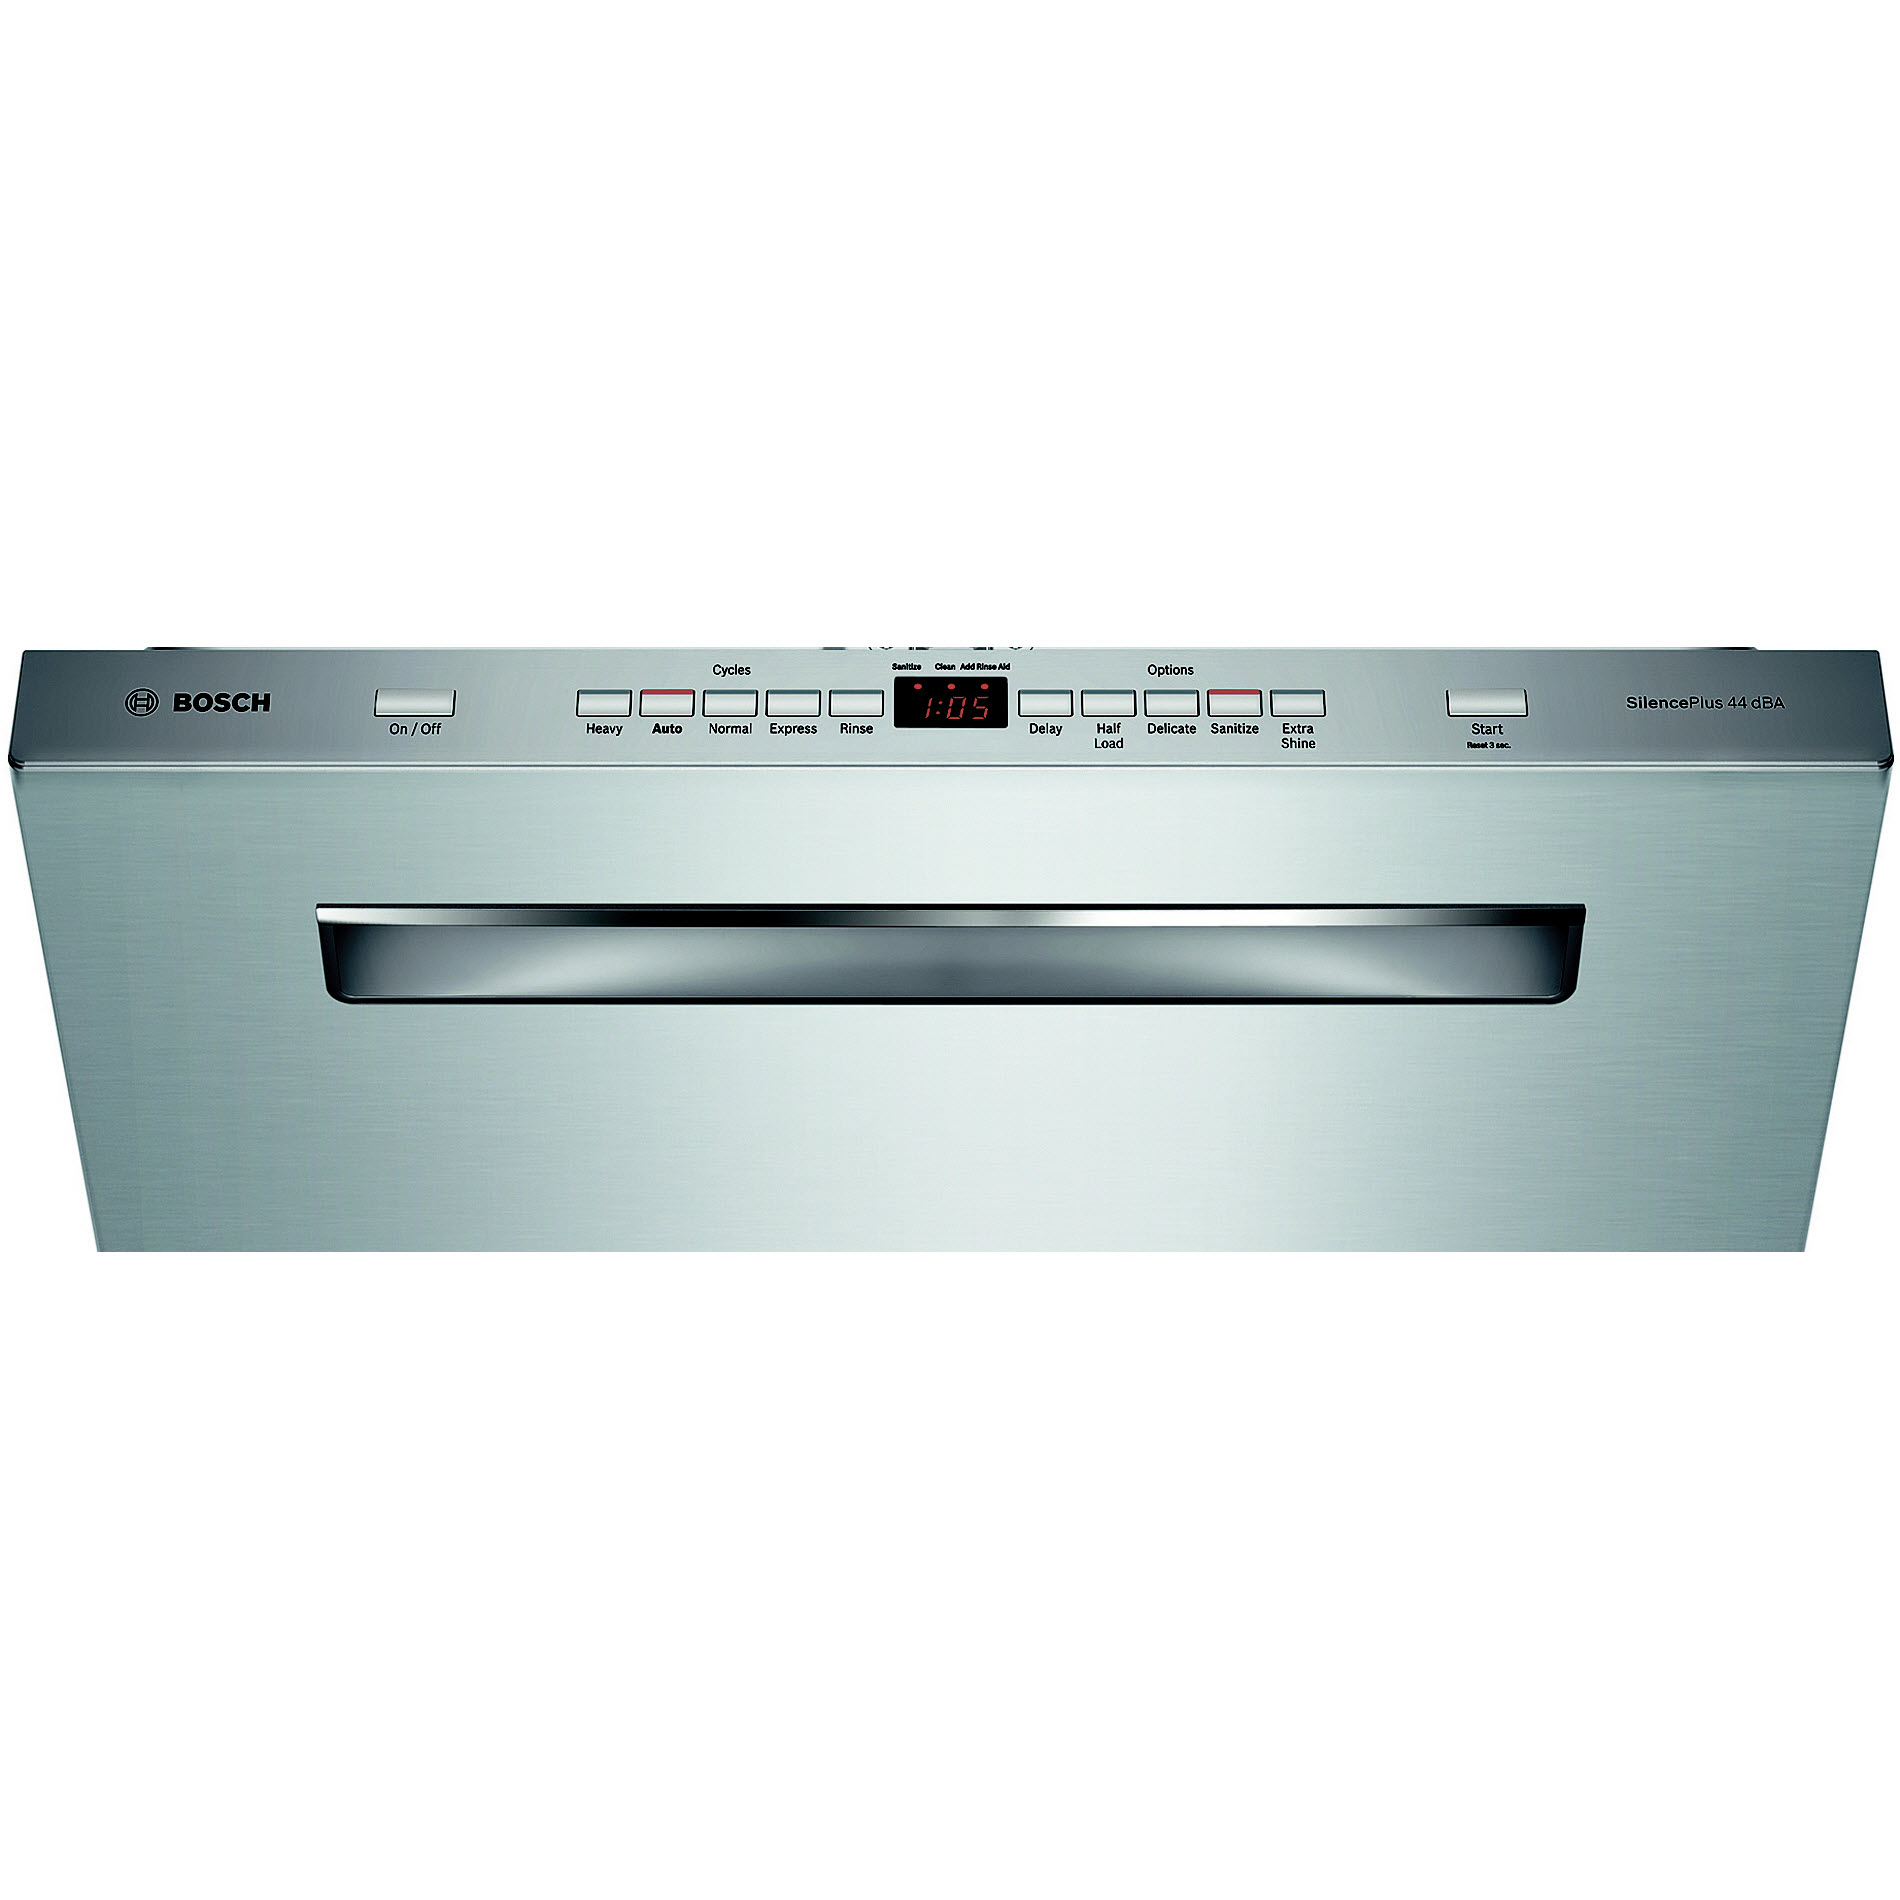 "Bosch SHP65T55UC 500 Series 24"" Pocket Handle Dishwasher - Stainless Steel"